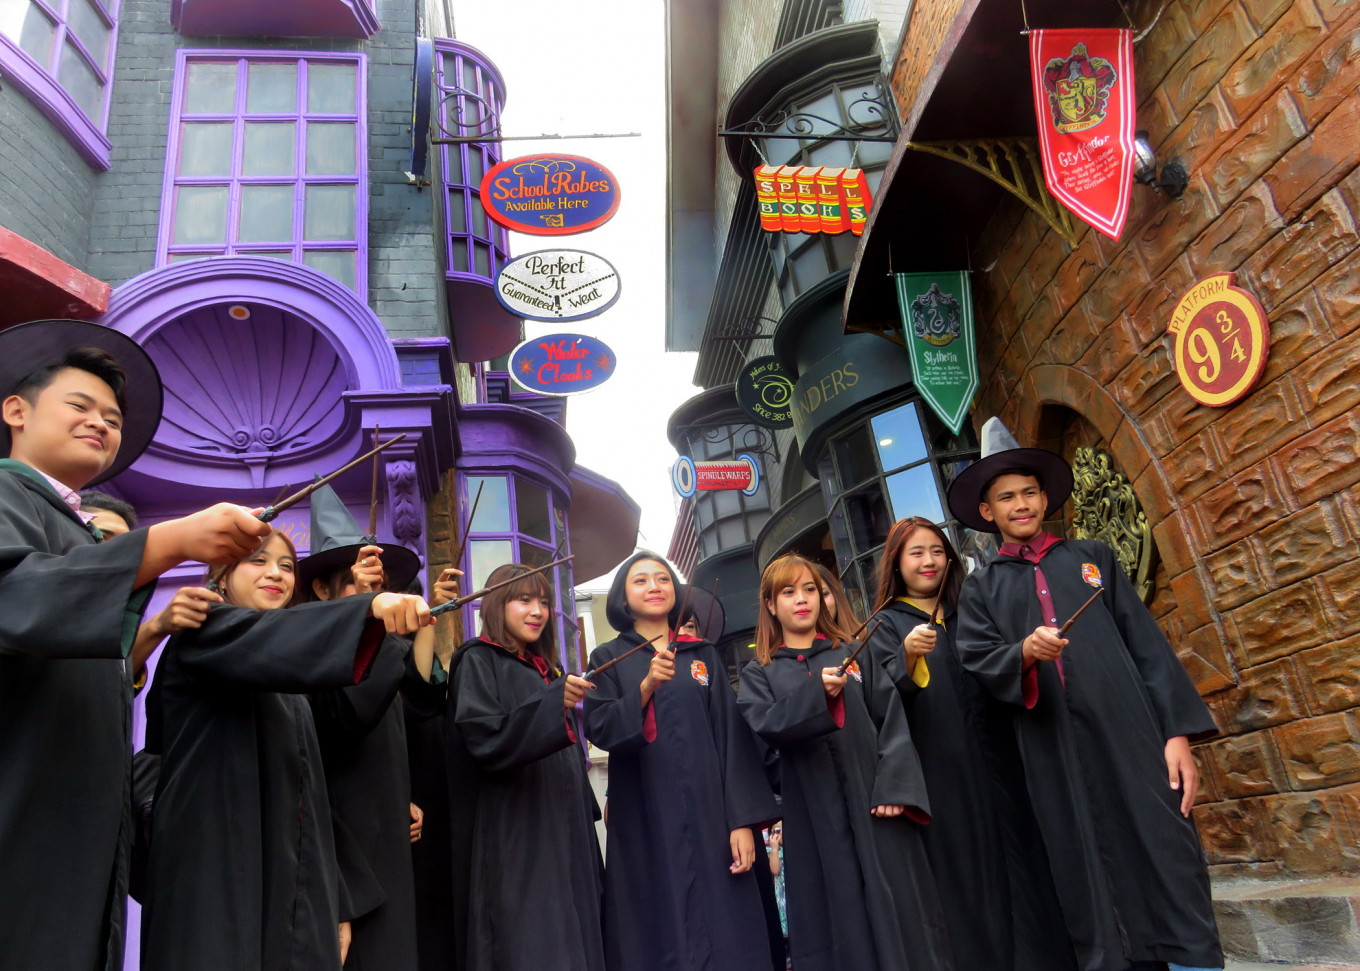 Visitors can rent Hogwarts robes and wizard accessories at the Legend Stars Park.